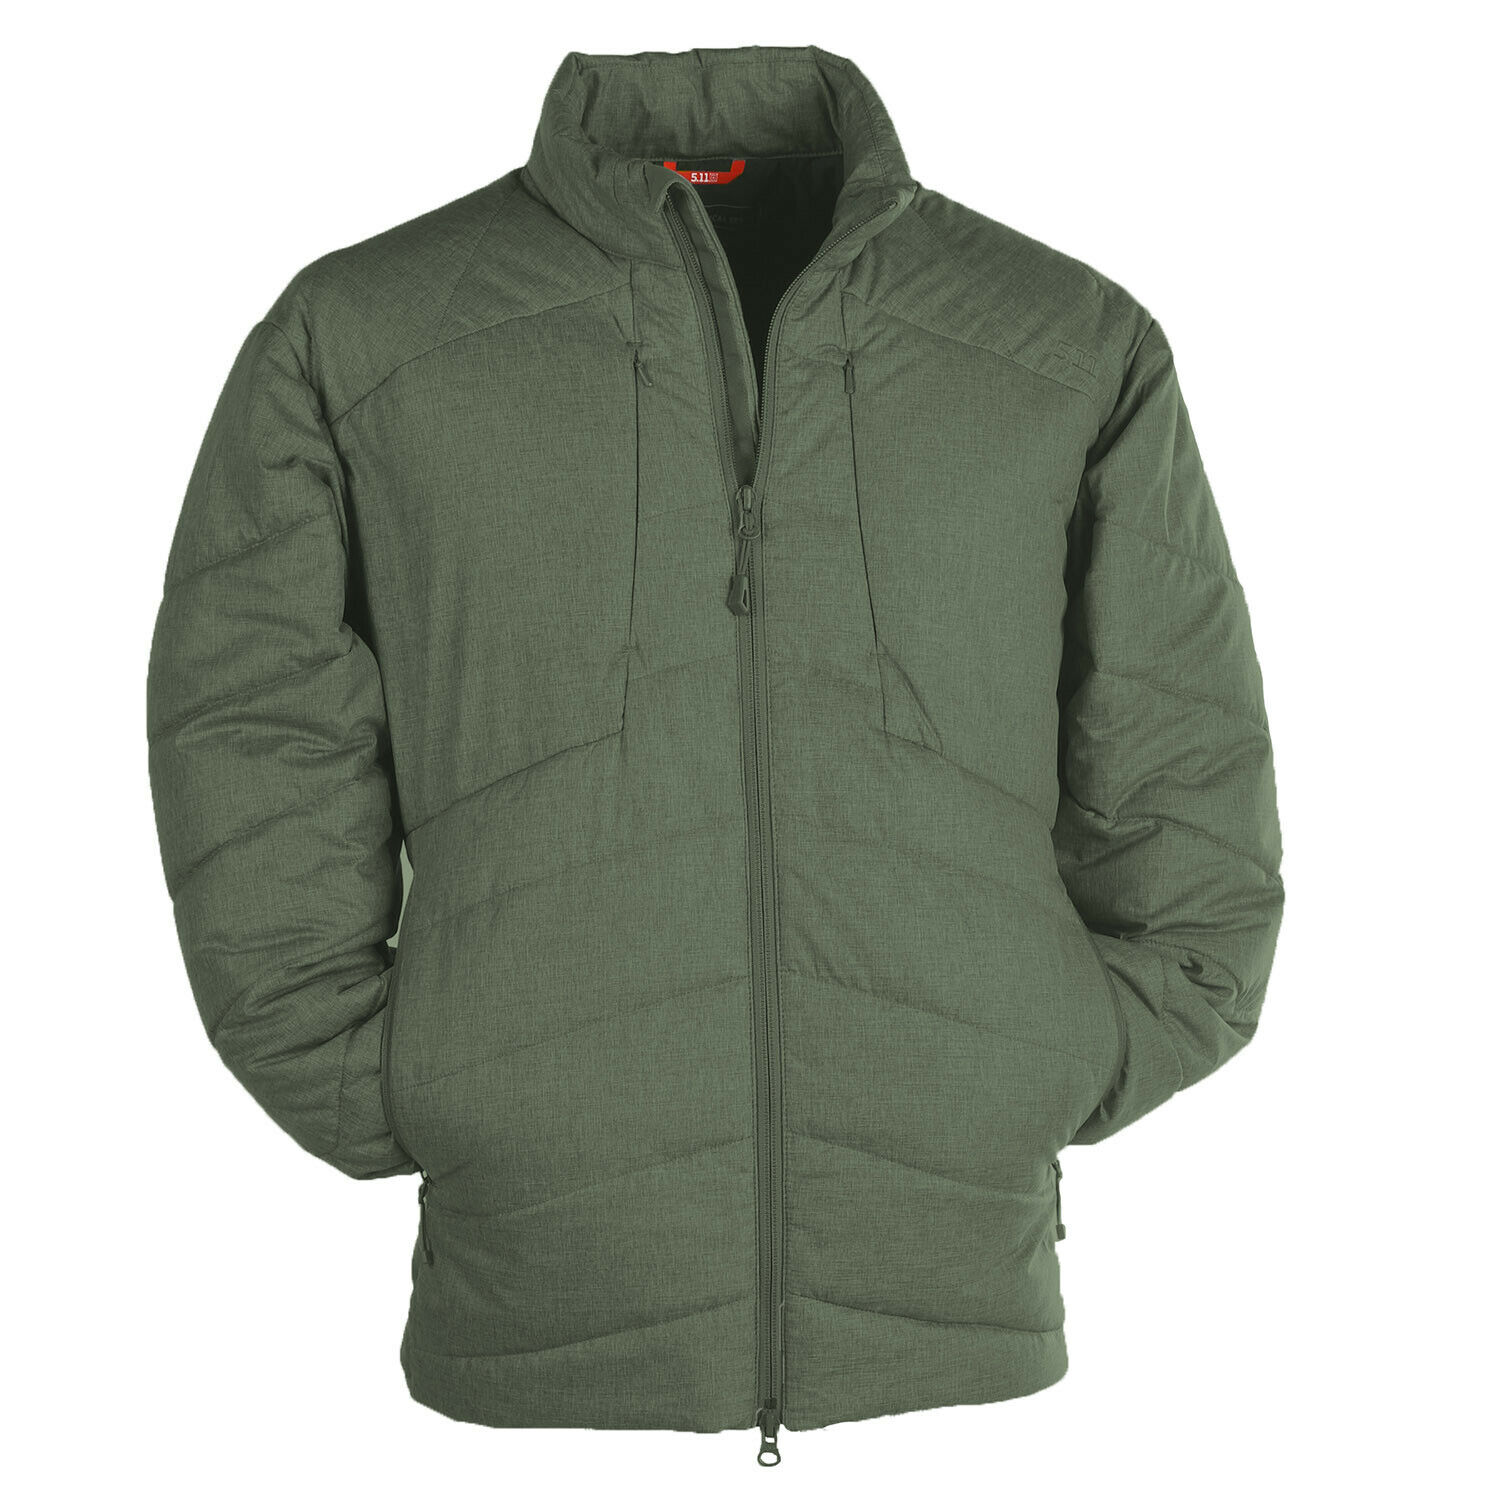 5.11 Tactical Insulator Jacket